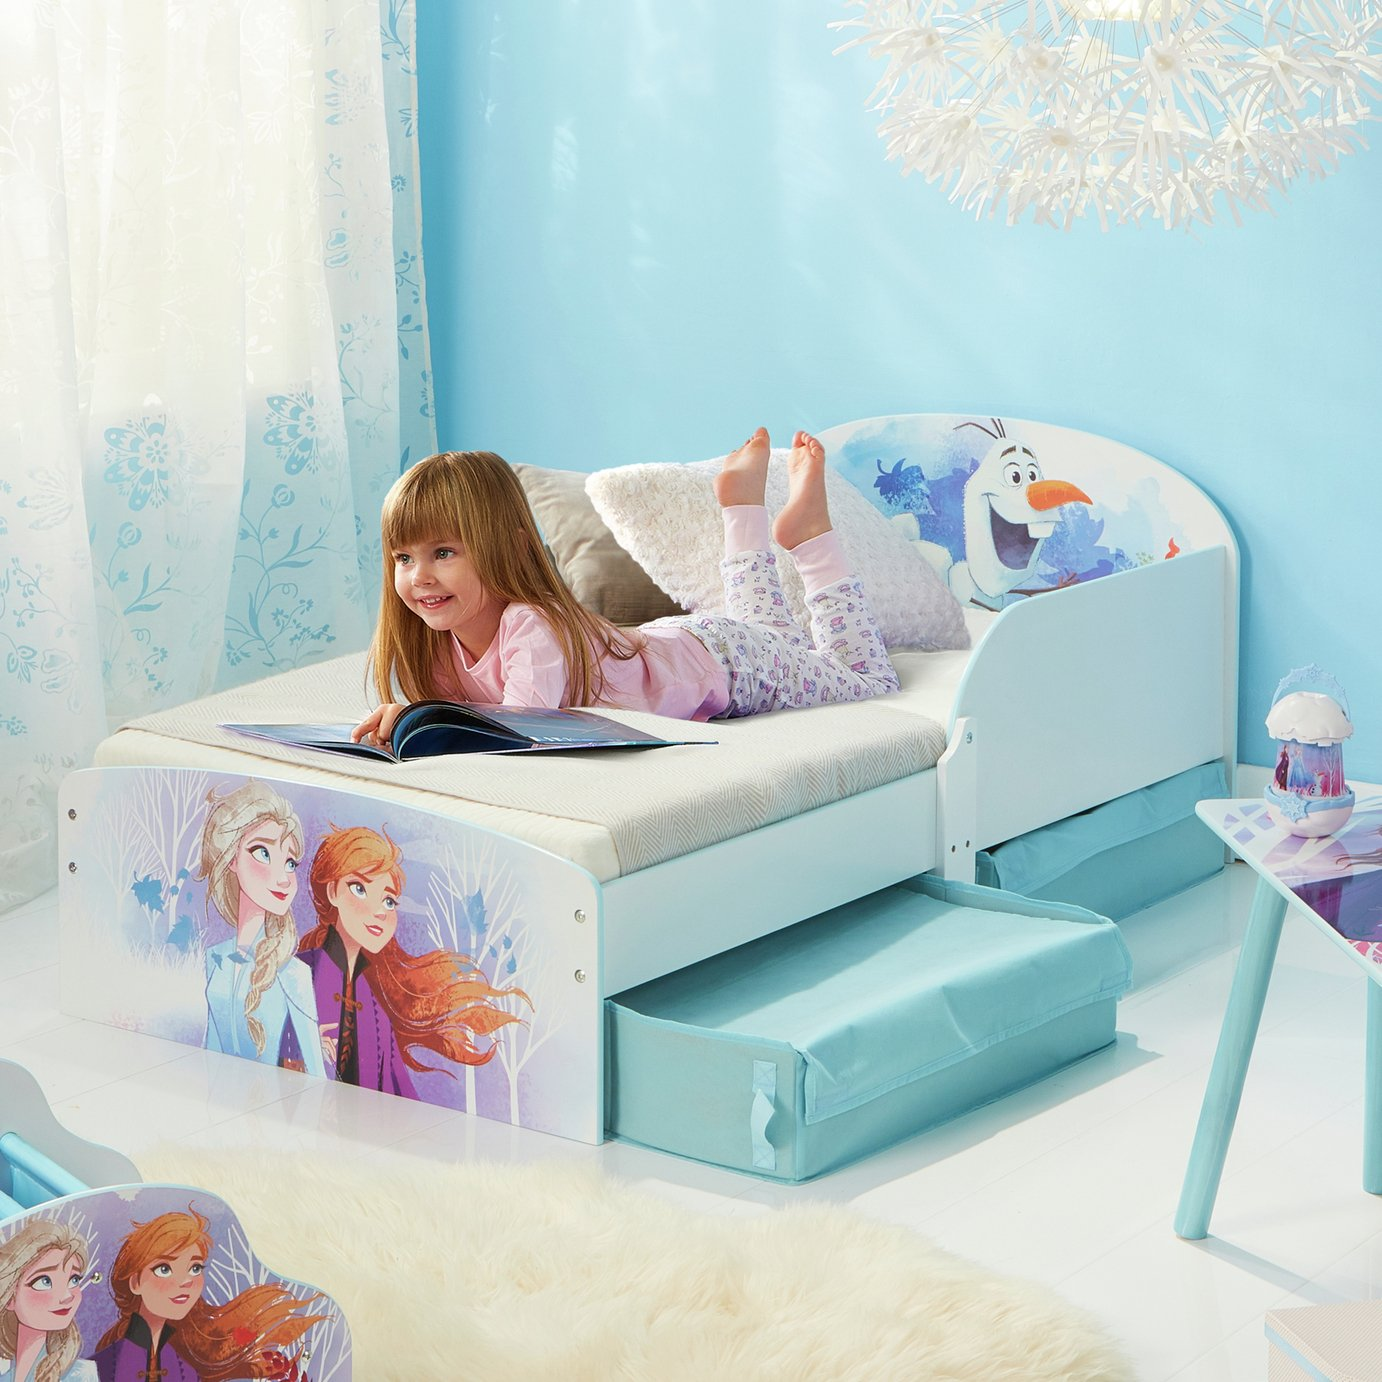 Disney Frozen Toddler Bed with Drawers